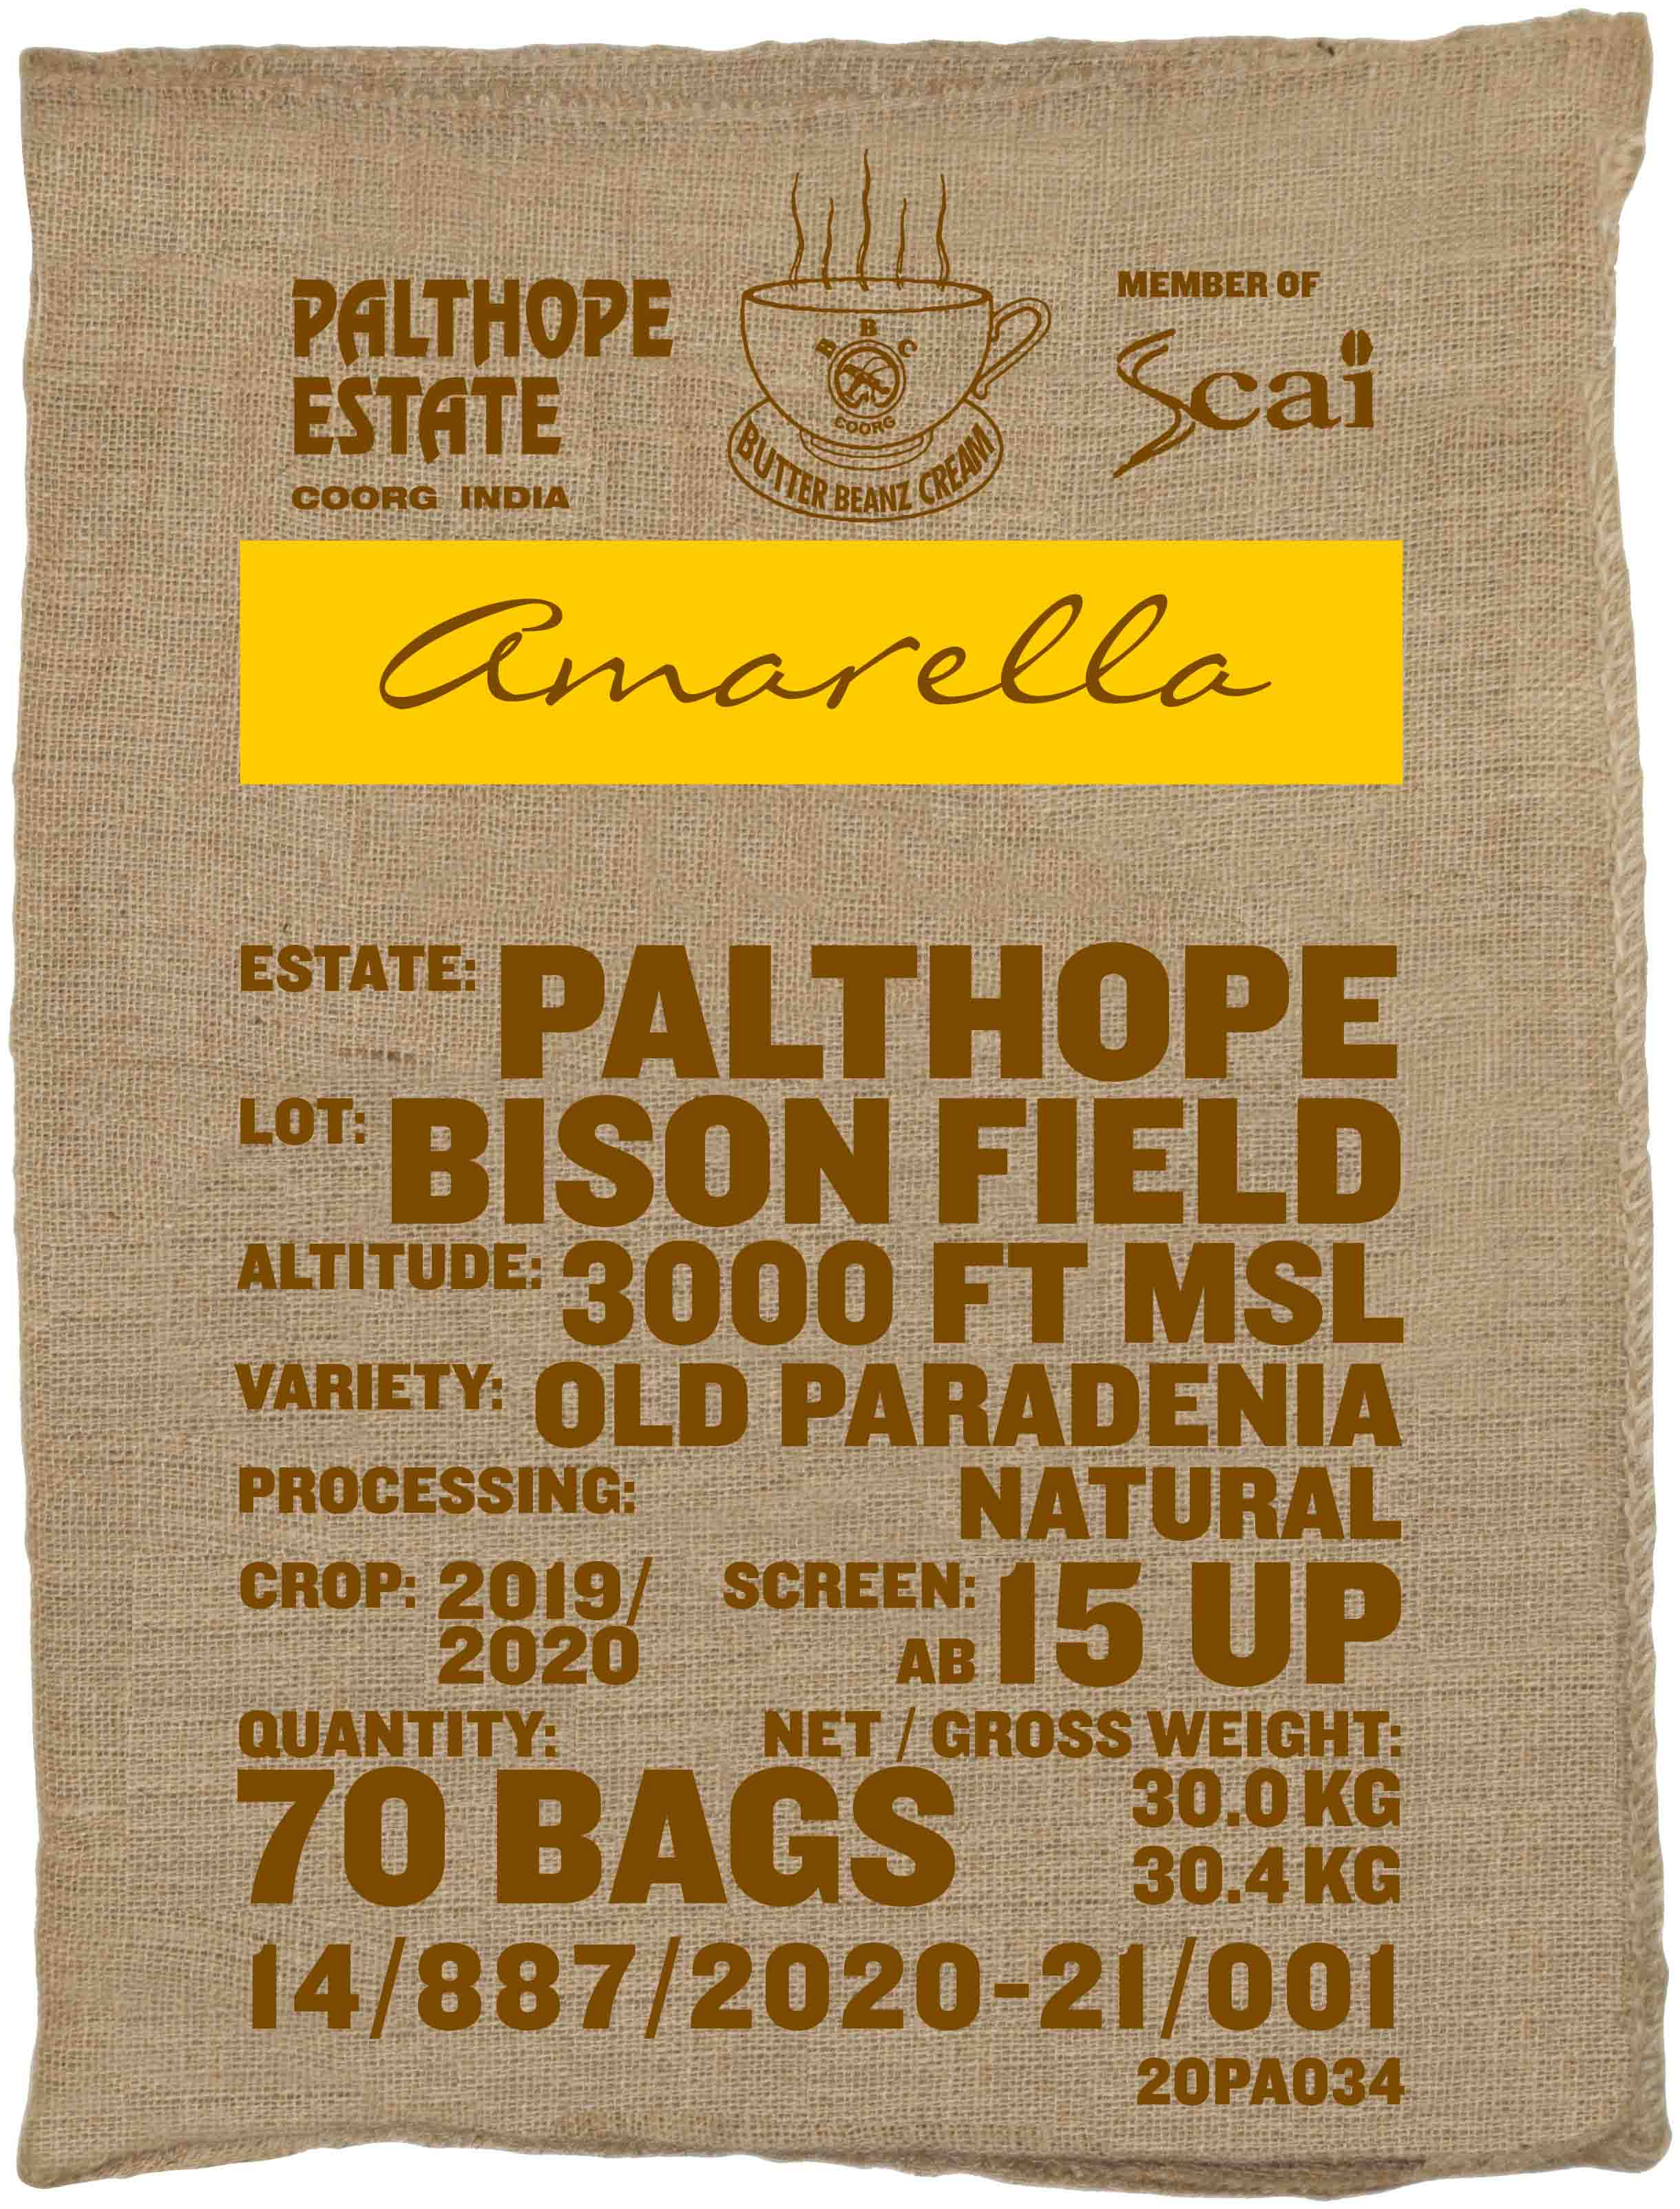 Ein Sack amarella Parzellenkaffee Varietät Old Paradenia. Palthope Estate Lot Bison Field.